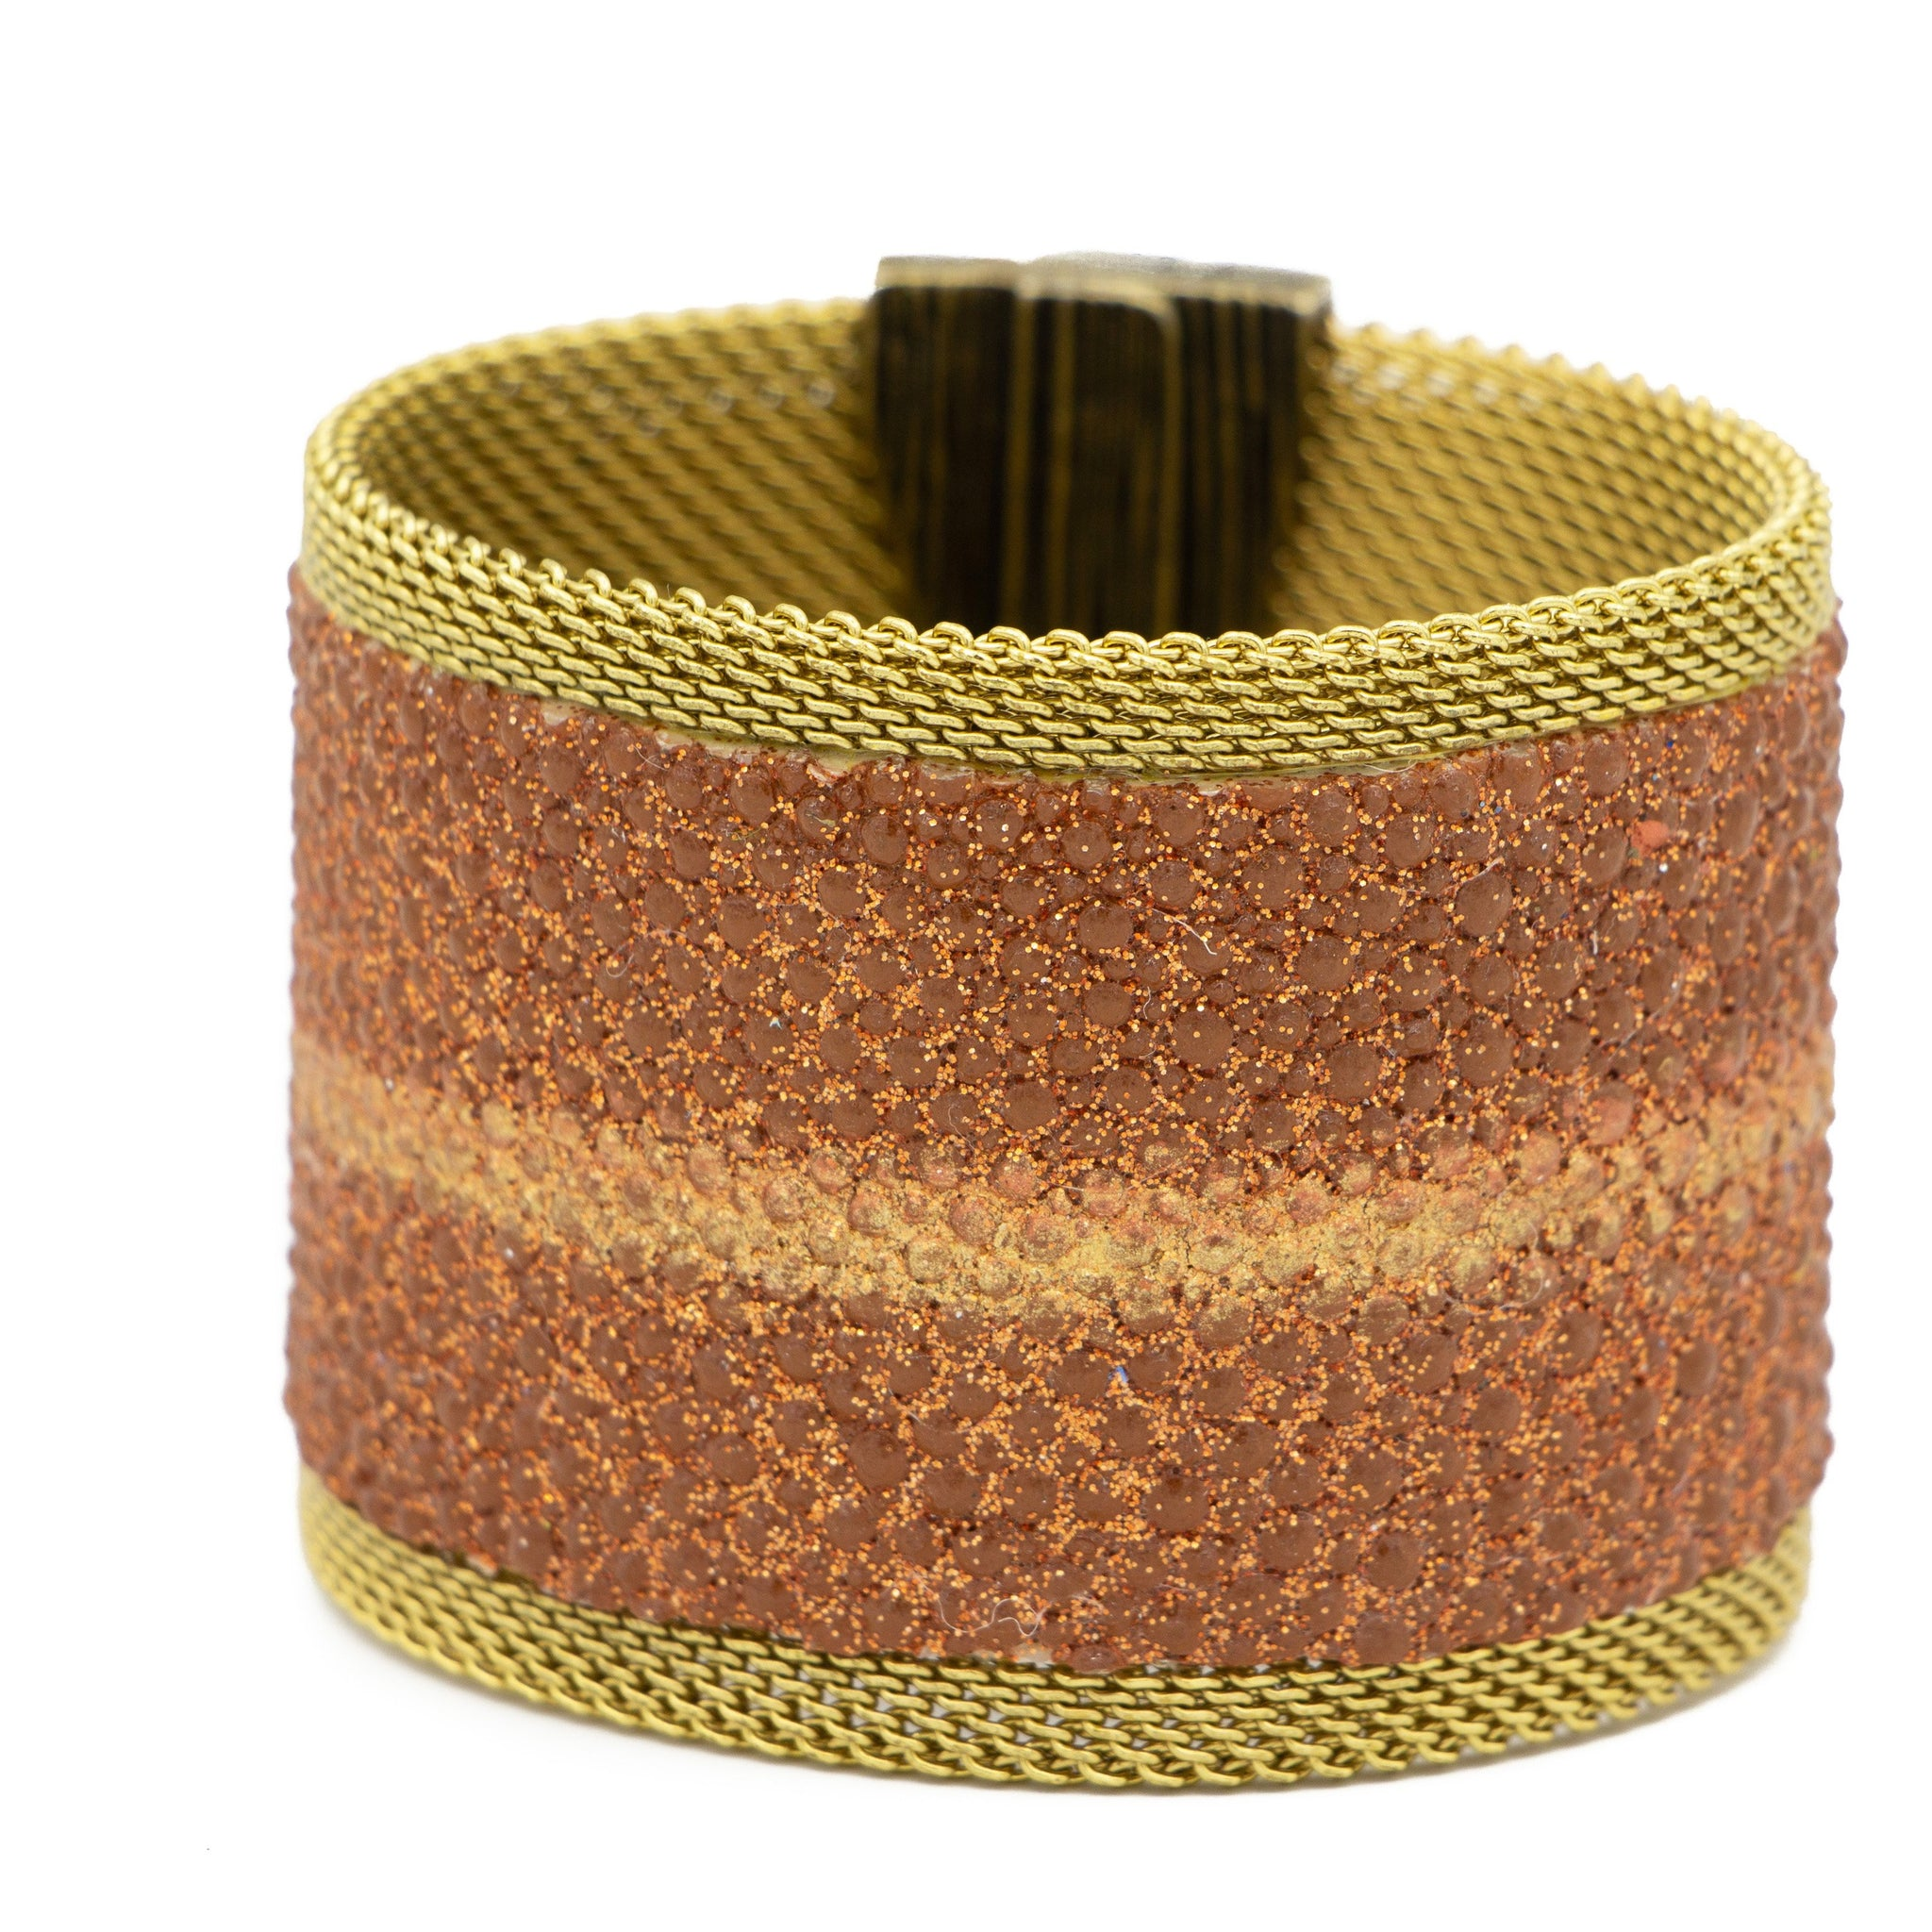 Mocha Shimmer Stingray Cuff Golden Stripe